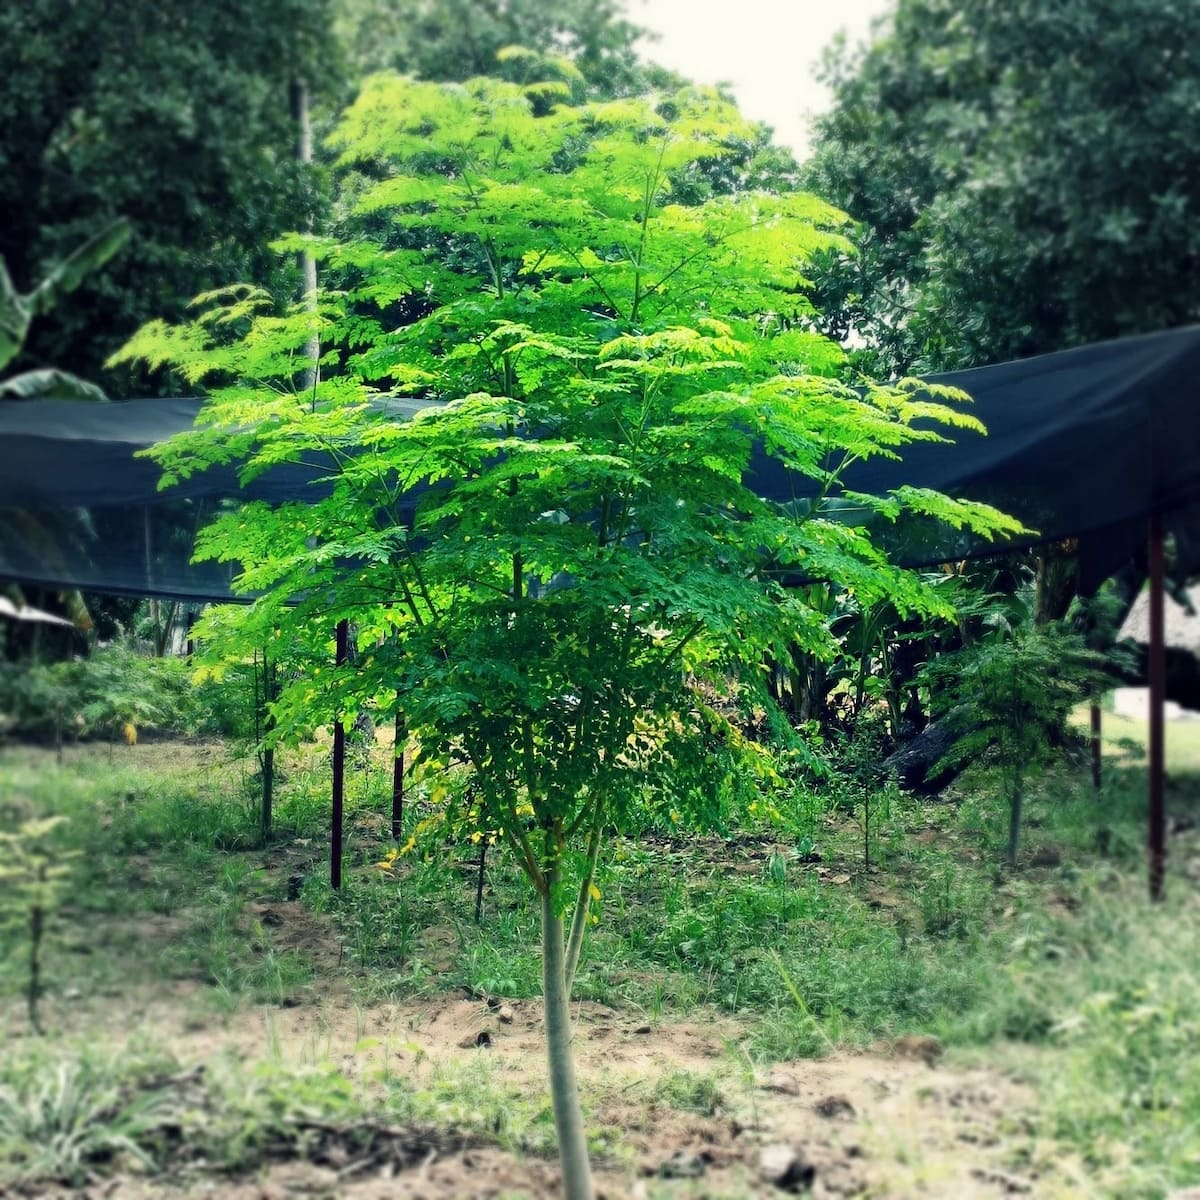 Moringa trees in a garden